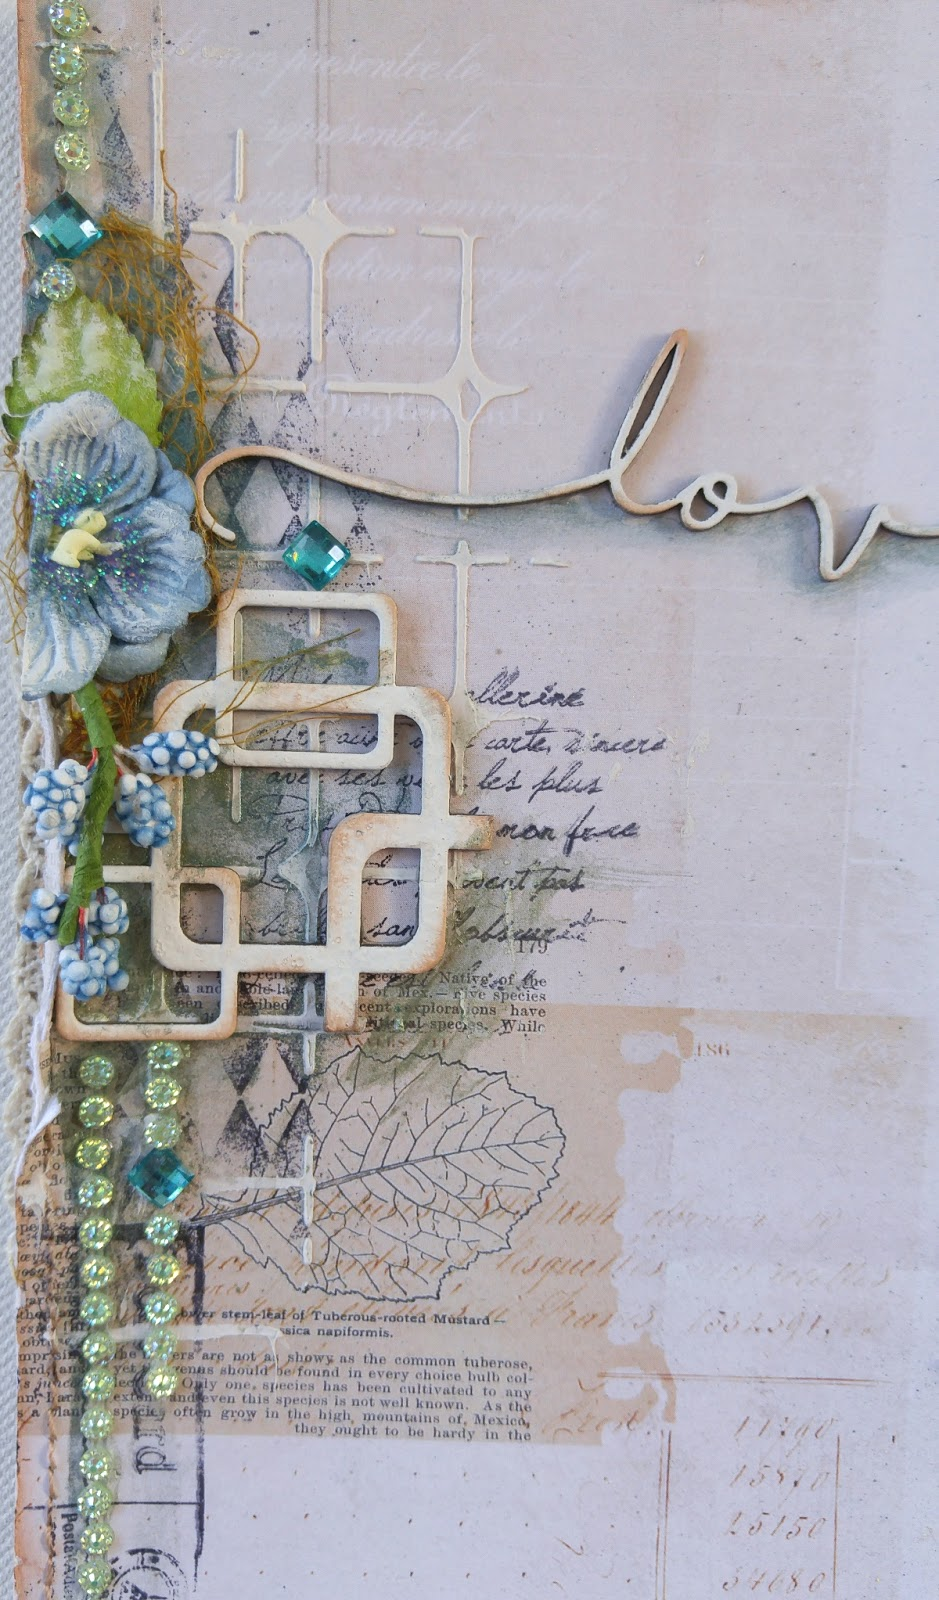 Baby scrapbook ideas uk - Another Little Closeup Of The Accent Area On My Layout I Like To Throw A Little Accent Area In To Balance The Page Design The Little Blue Buds Were Part